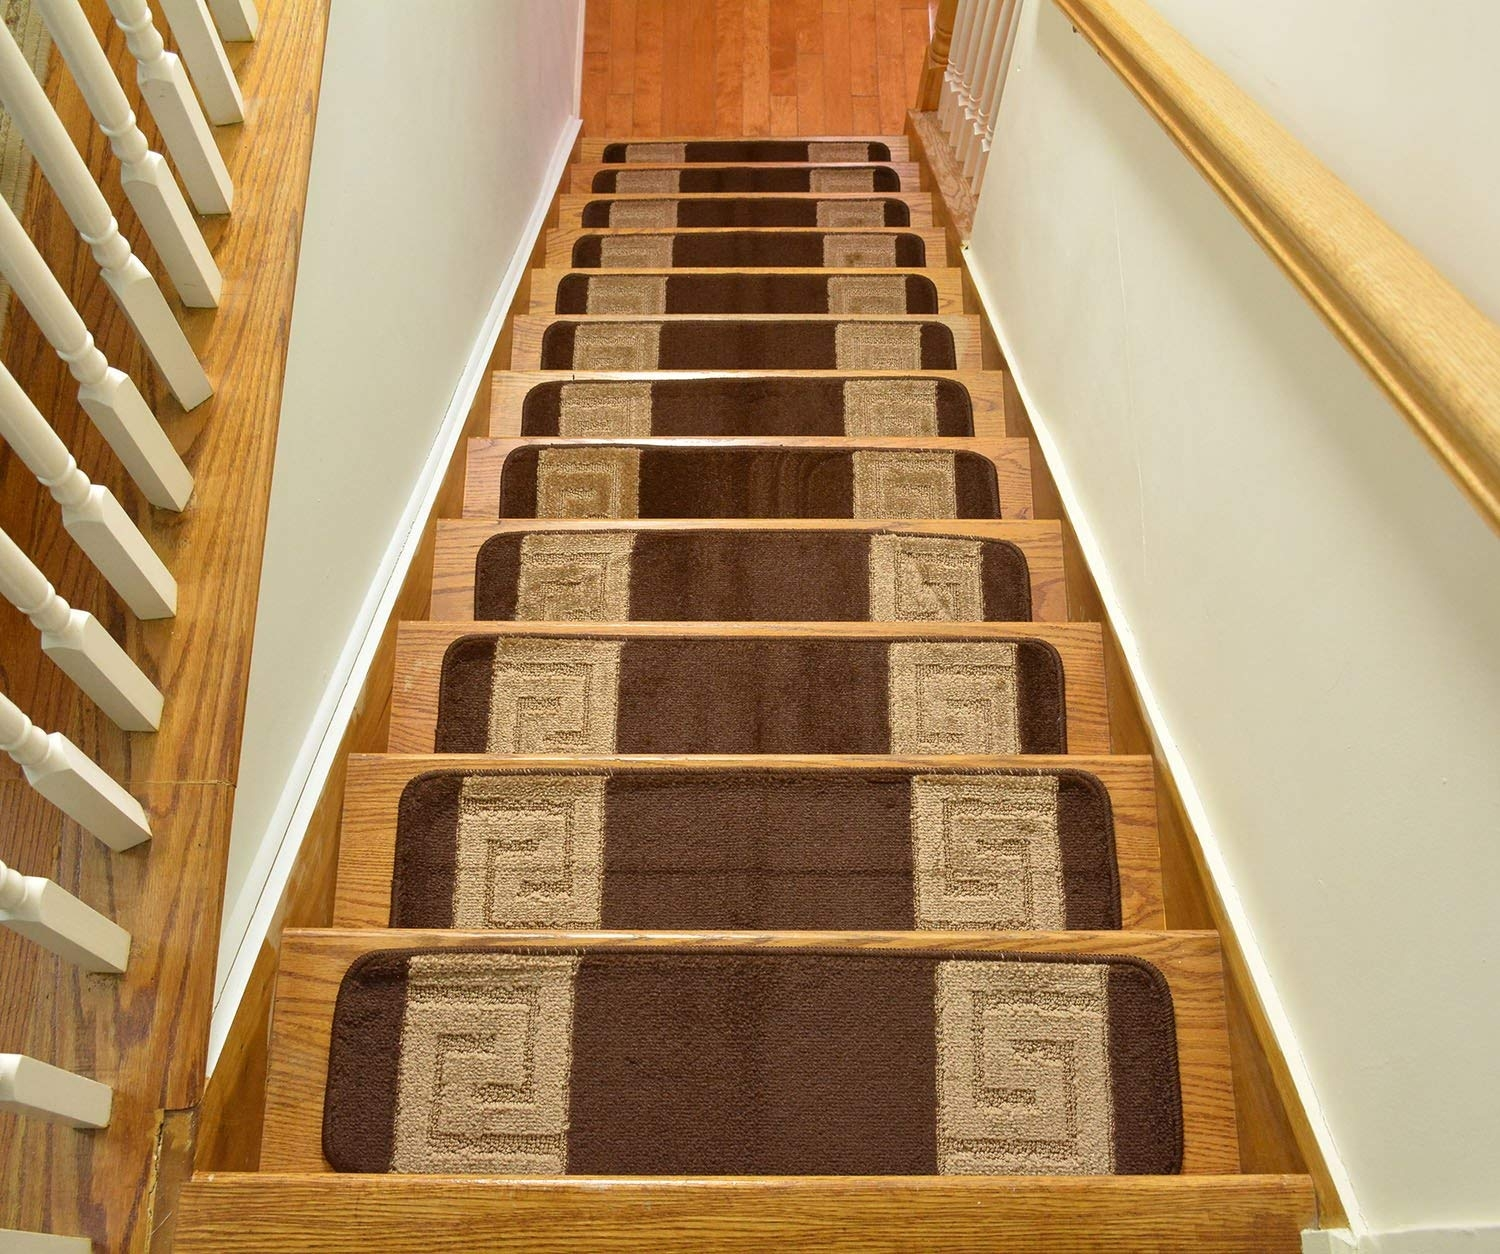 Top 10 Carpets For Stairs In 2020 Highly Recommend In 2020 | 8 Inch Carpet Stair Treads | Bullnose Carpet | Wood Stairs | Rubber Backing | Mat | Non Slip Stair